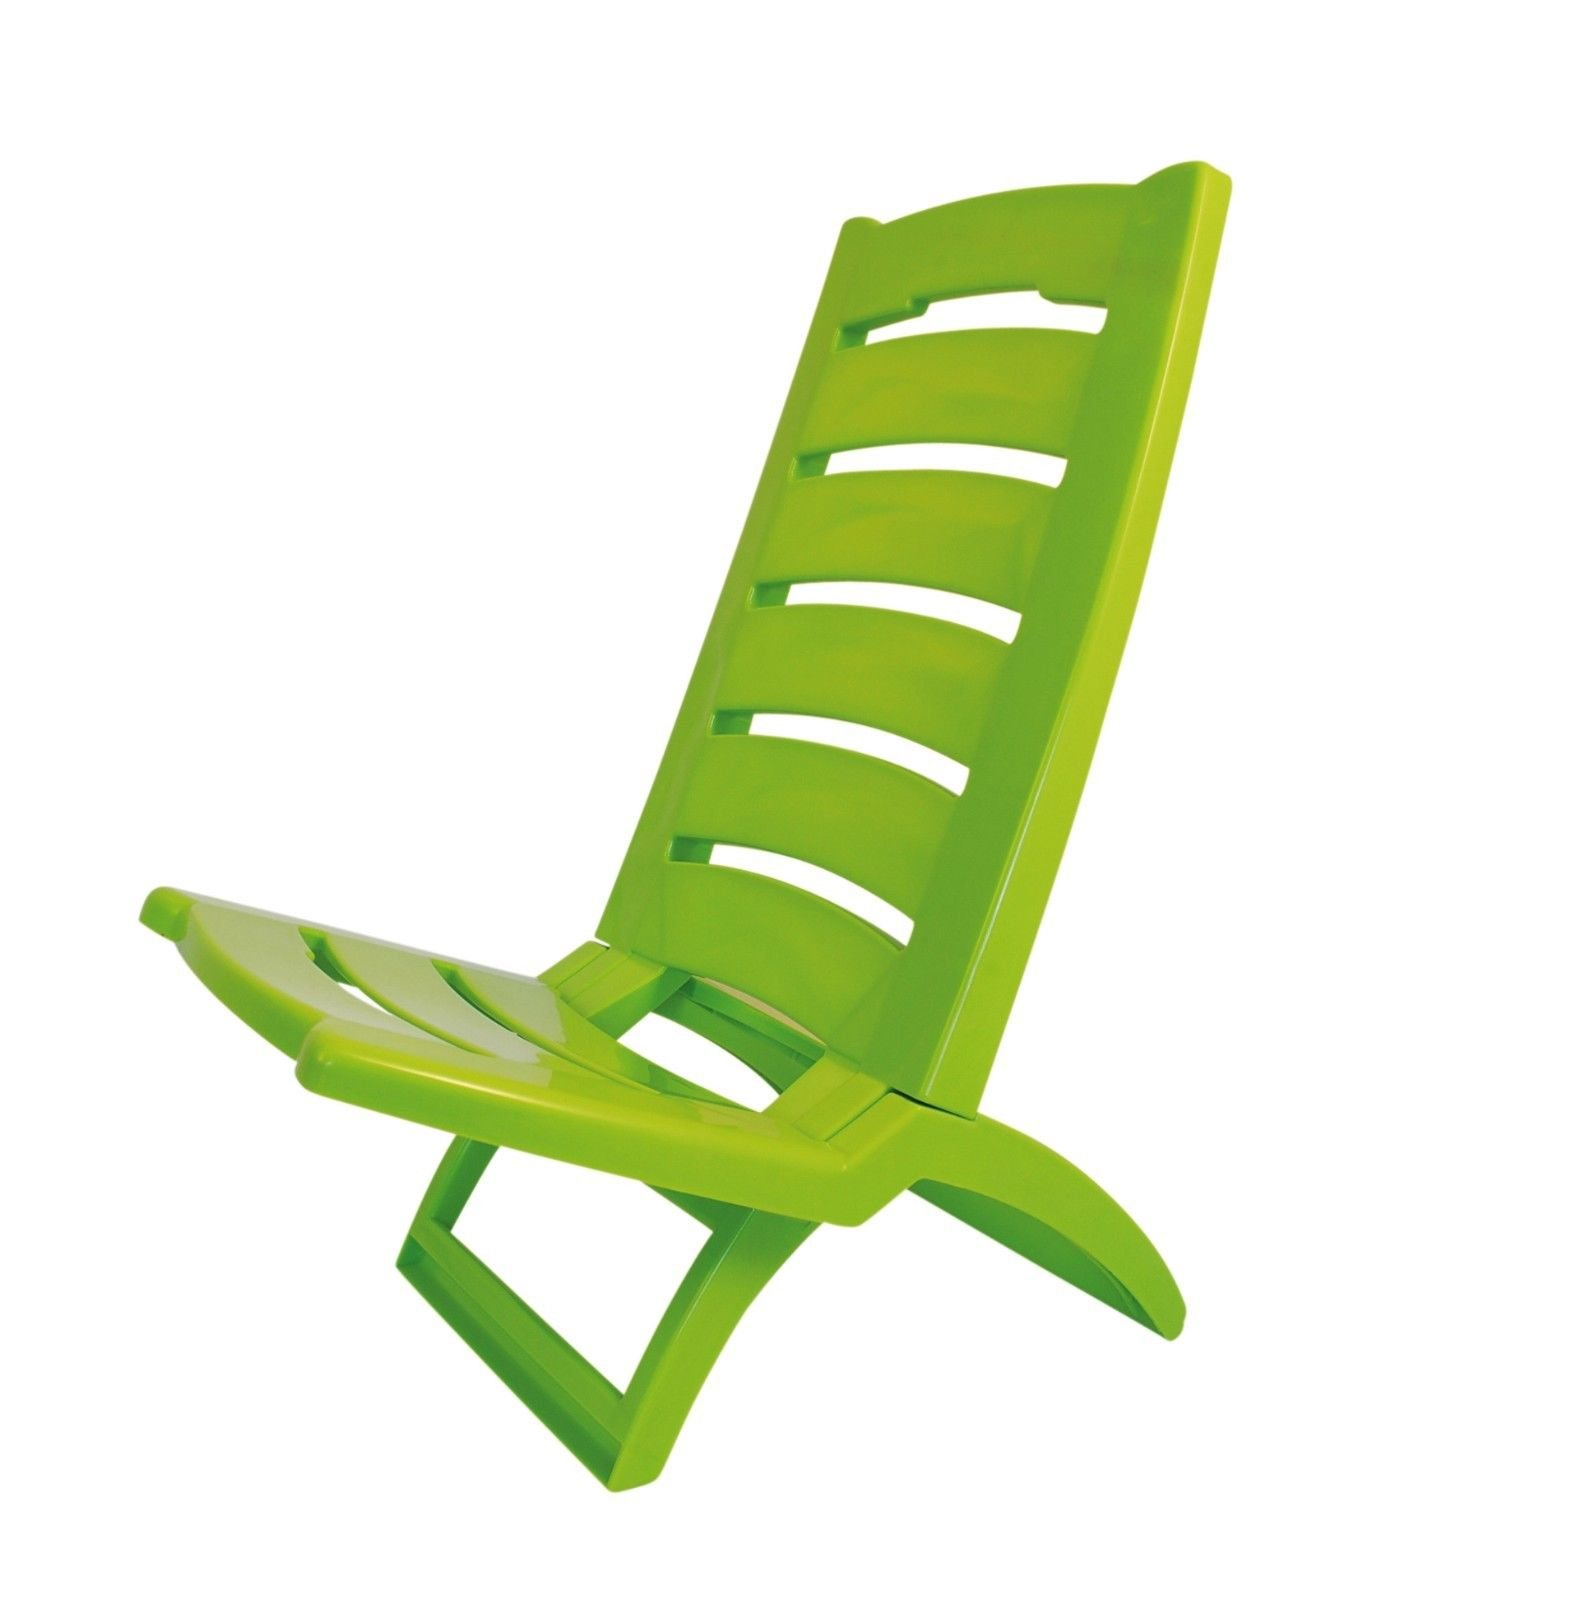 ADRIATIC Beach Chair Coloured Folding Plastic Low Deck Chair Sun Garden Sea Side Set Of 2 Light Green